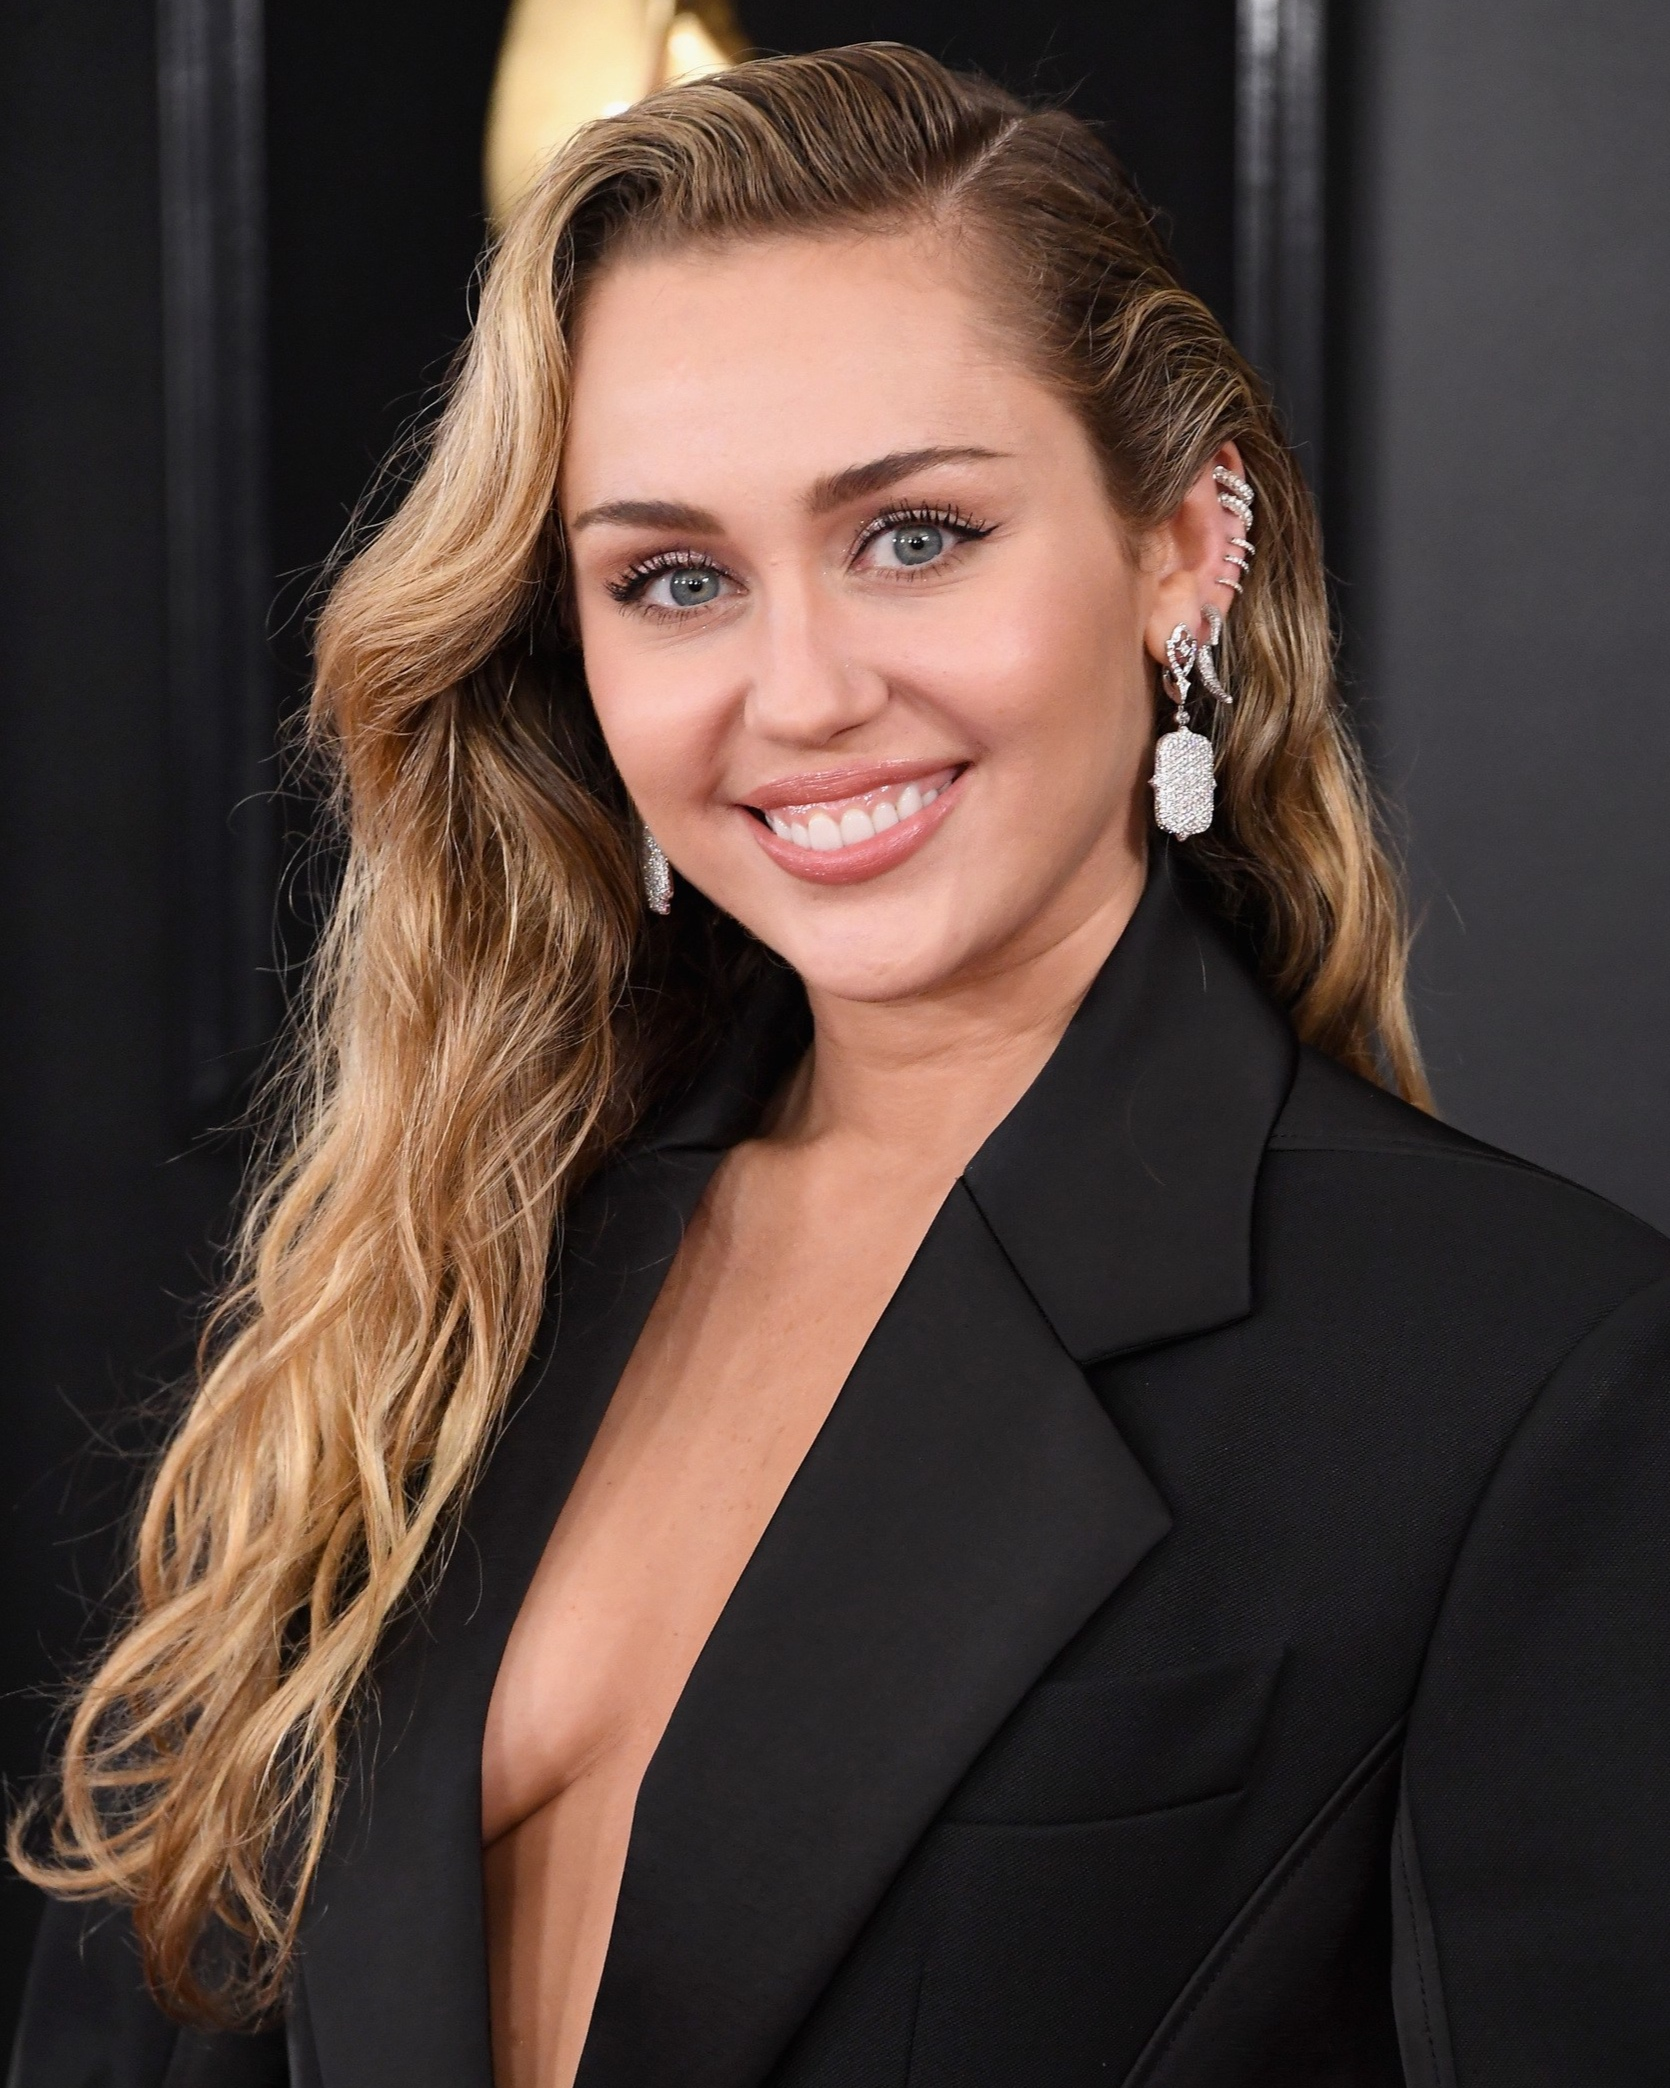 Miley Cyrus: Meet the Missus - Okay, maybe she was missing her shirt in her first outfit of the evening (an unspeakably cool Mugler suit featuring an oversized jacket and flared highwaters. Yes, yes and yes.). But ever since she got hitched to one of the Brothers Hemsworth, Cyrus has been presenting a fresh, feminine take on her frisky Southern self. Last night, we loved her long loose waves, low-key kitten liner and soft peach lip.